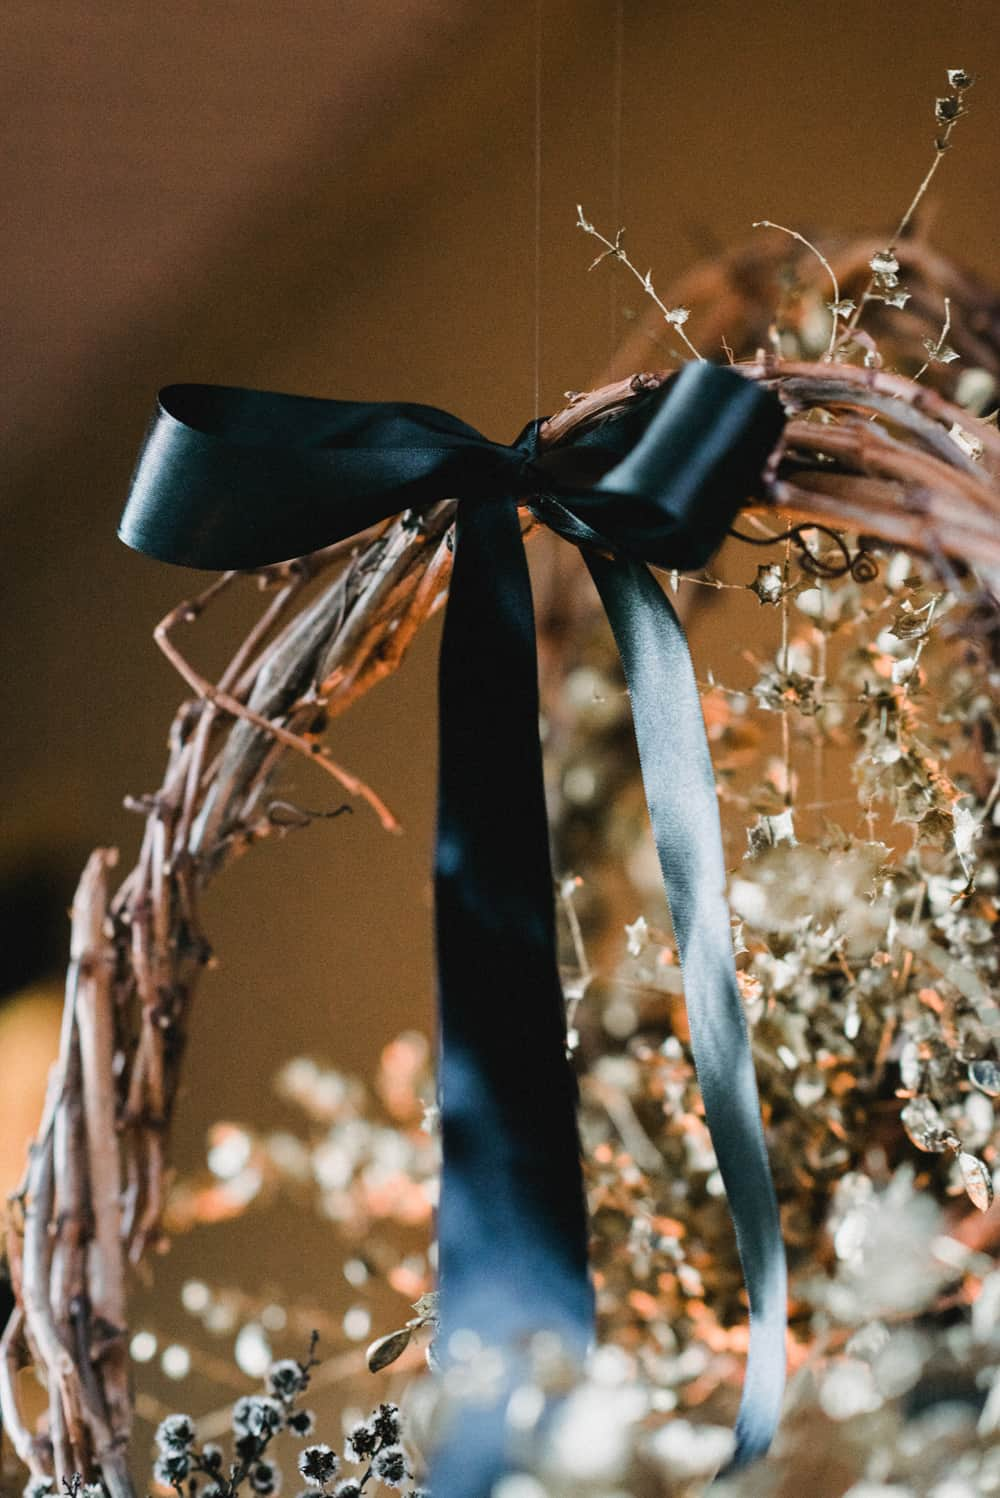 DIY Christmas wreath with dried flowers and wheat for an Australian Christmas